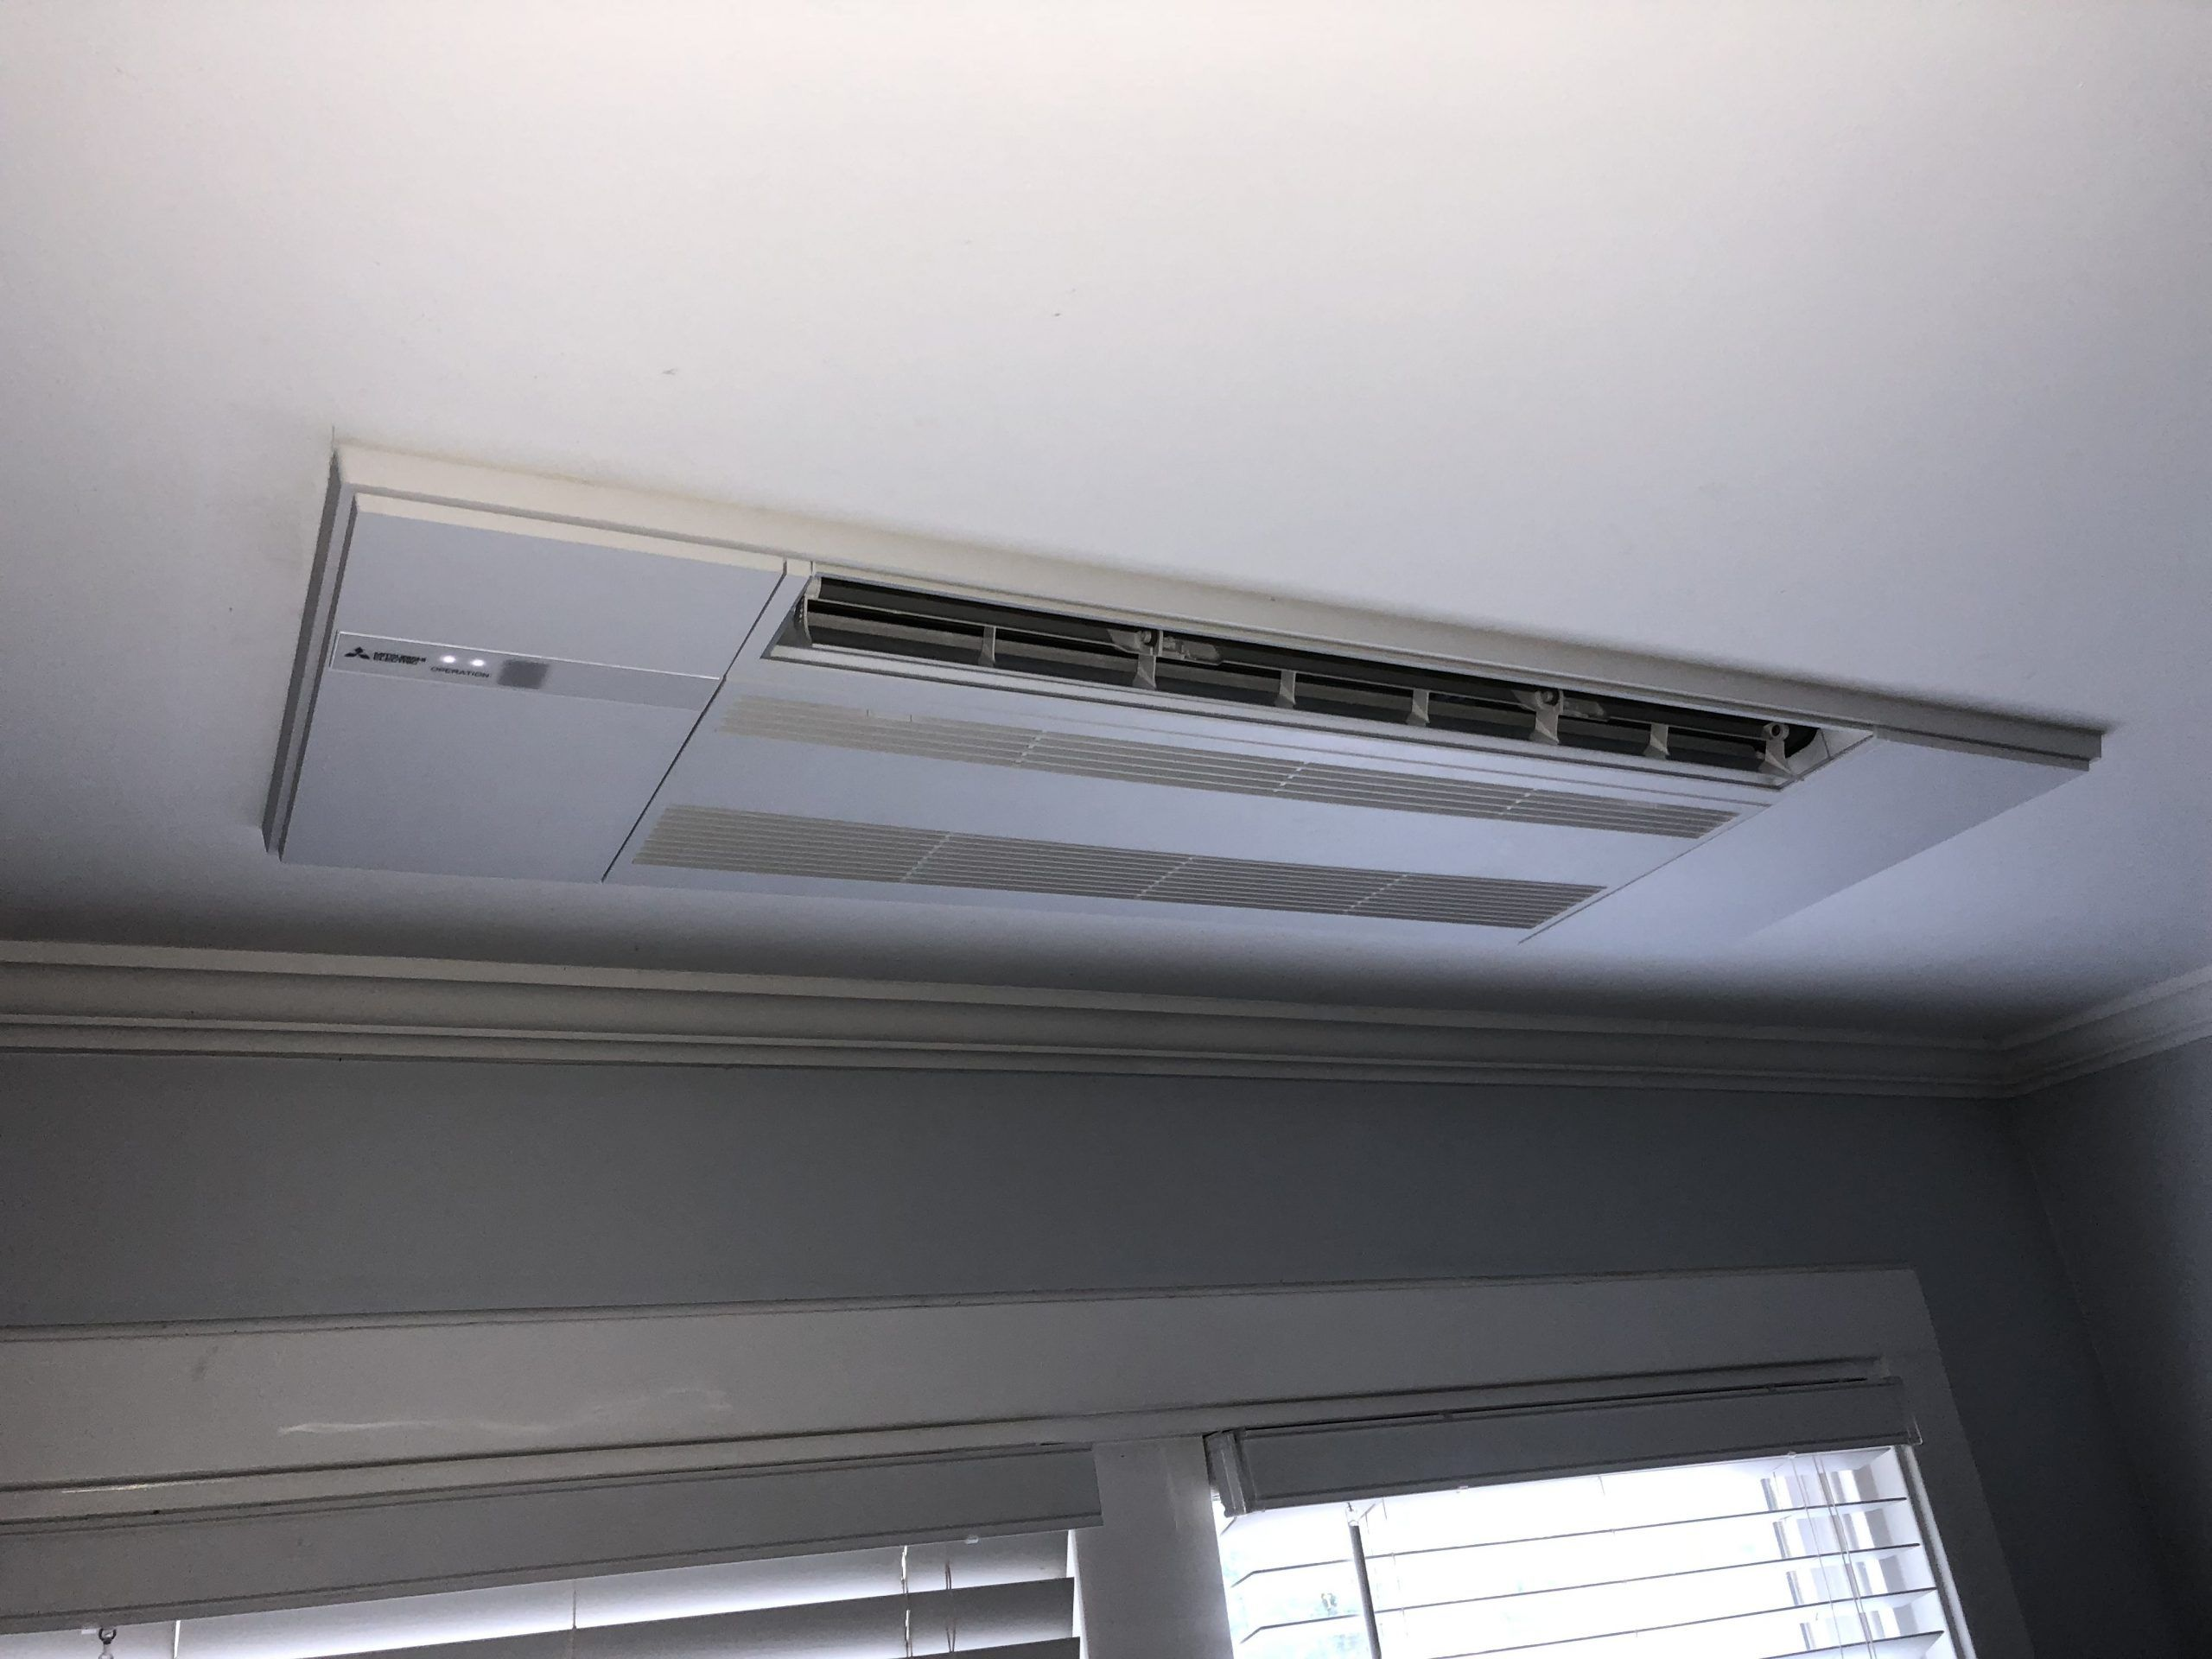 Mitsubishi Mlz Ductless Ceiling Unit Ceiling Ductless Mitsubishi Mlz Unit In 2020 Heating And Air Conditioning Ductless Ductless Heating And Cooling